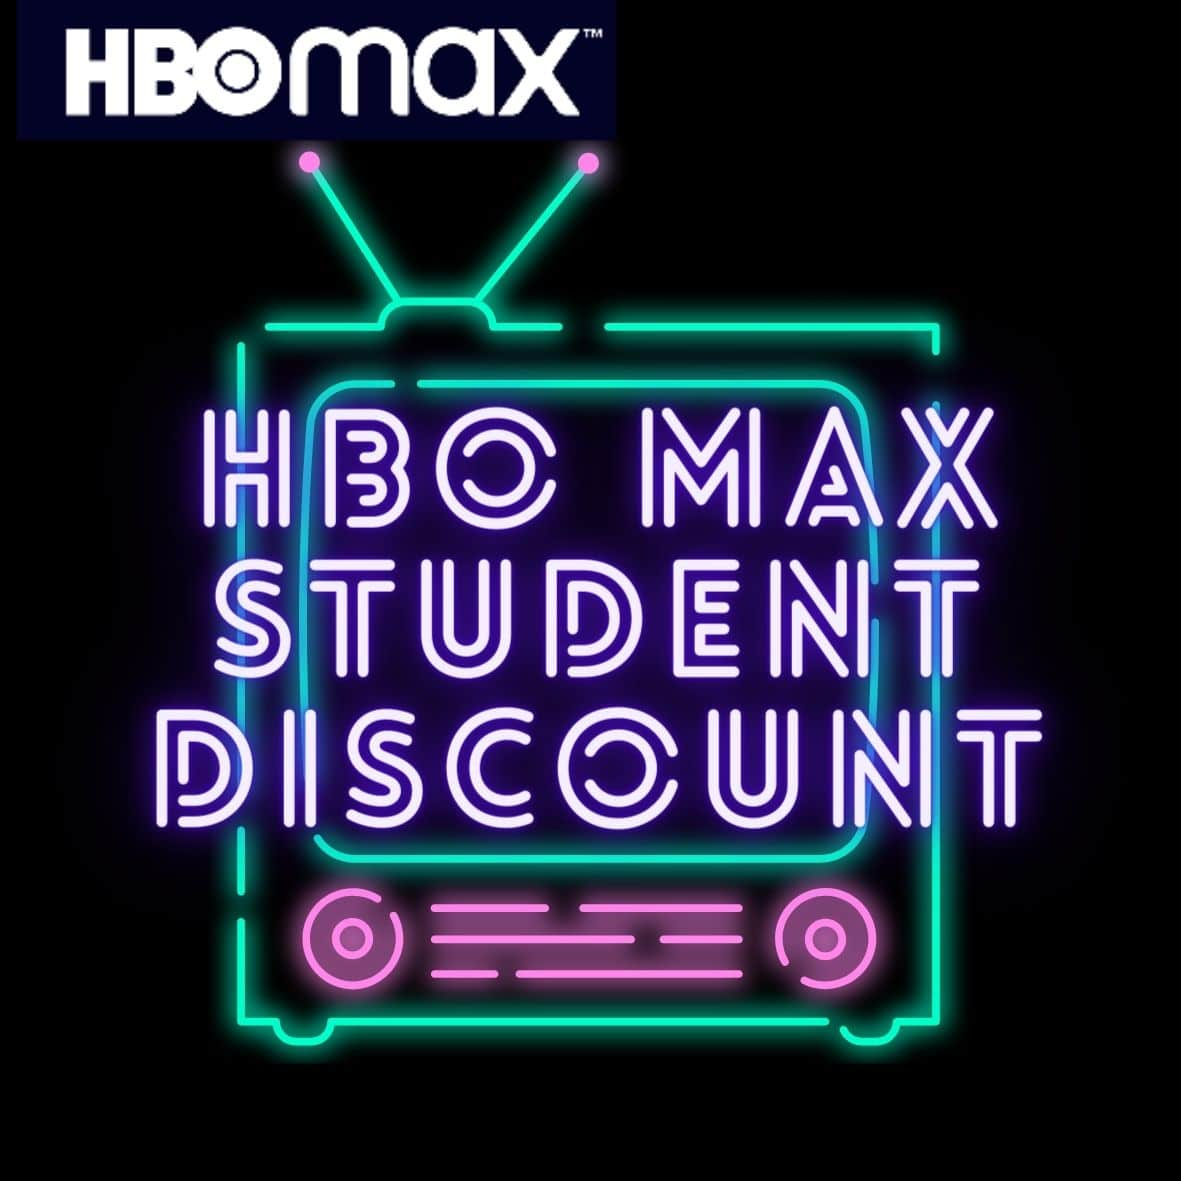 HBO Max Student Discount